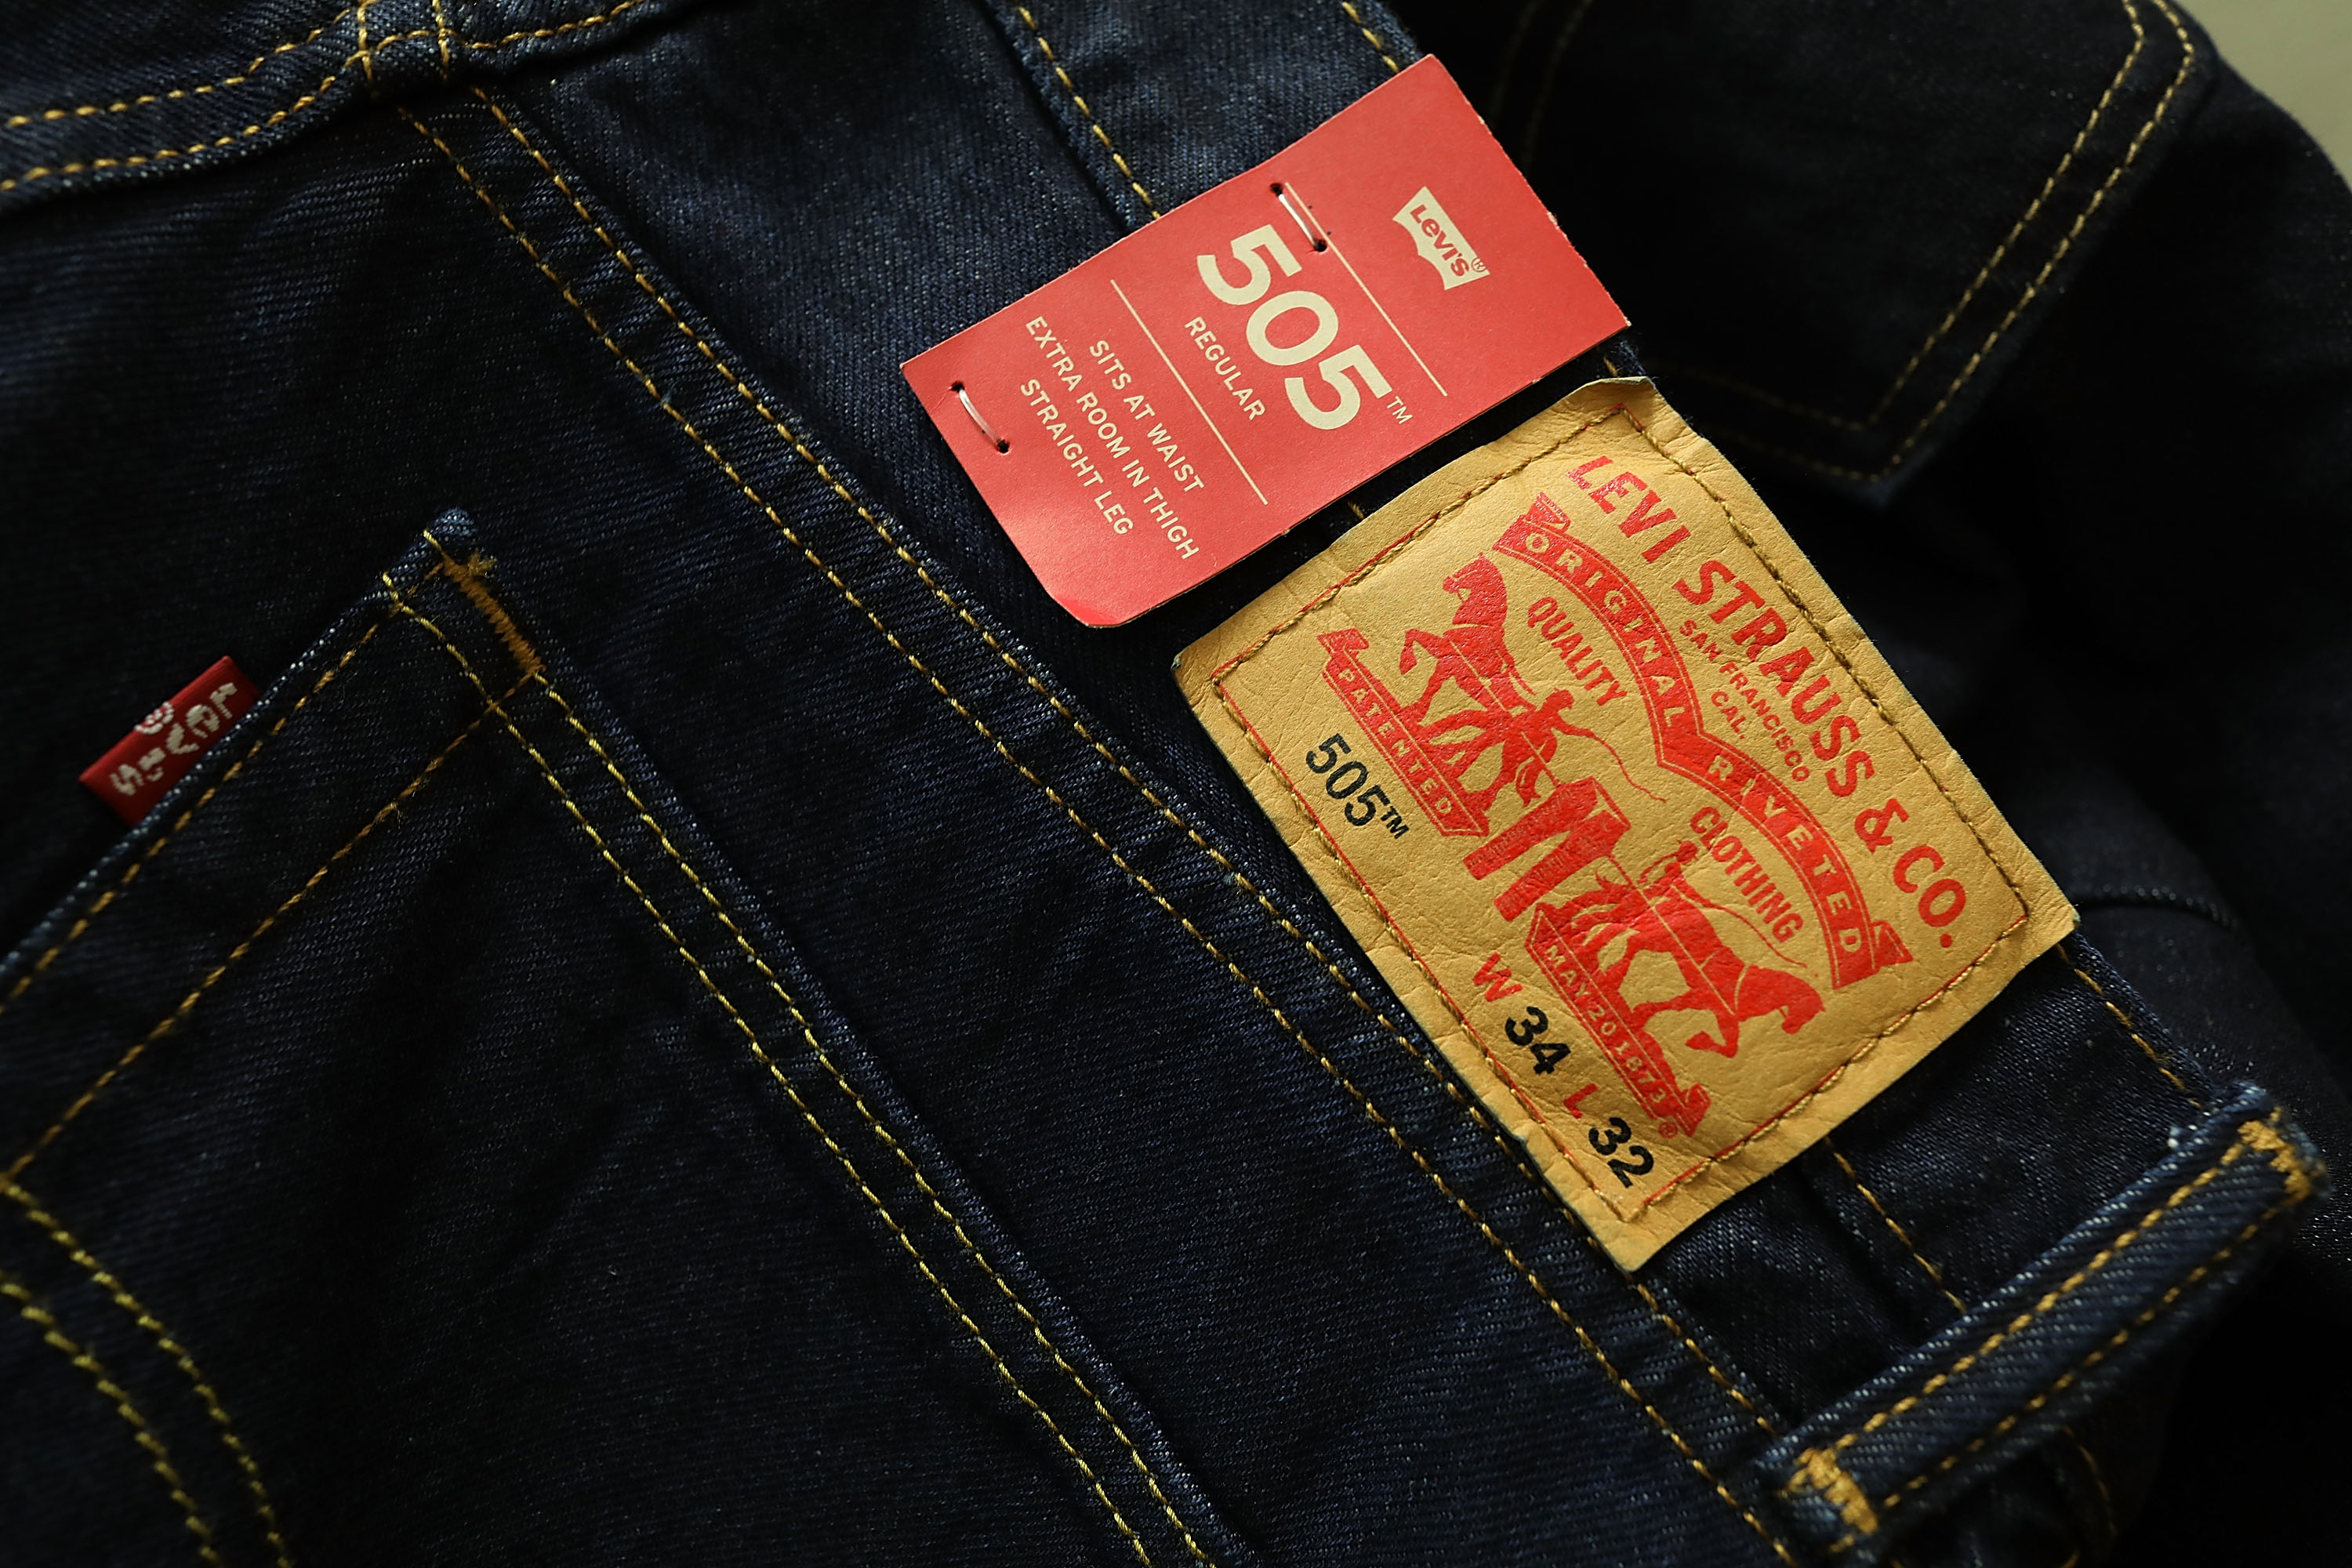 Levis Frankfurt Levi Strauss Looks To Deepen Pockets With Ipo